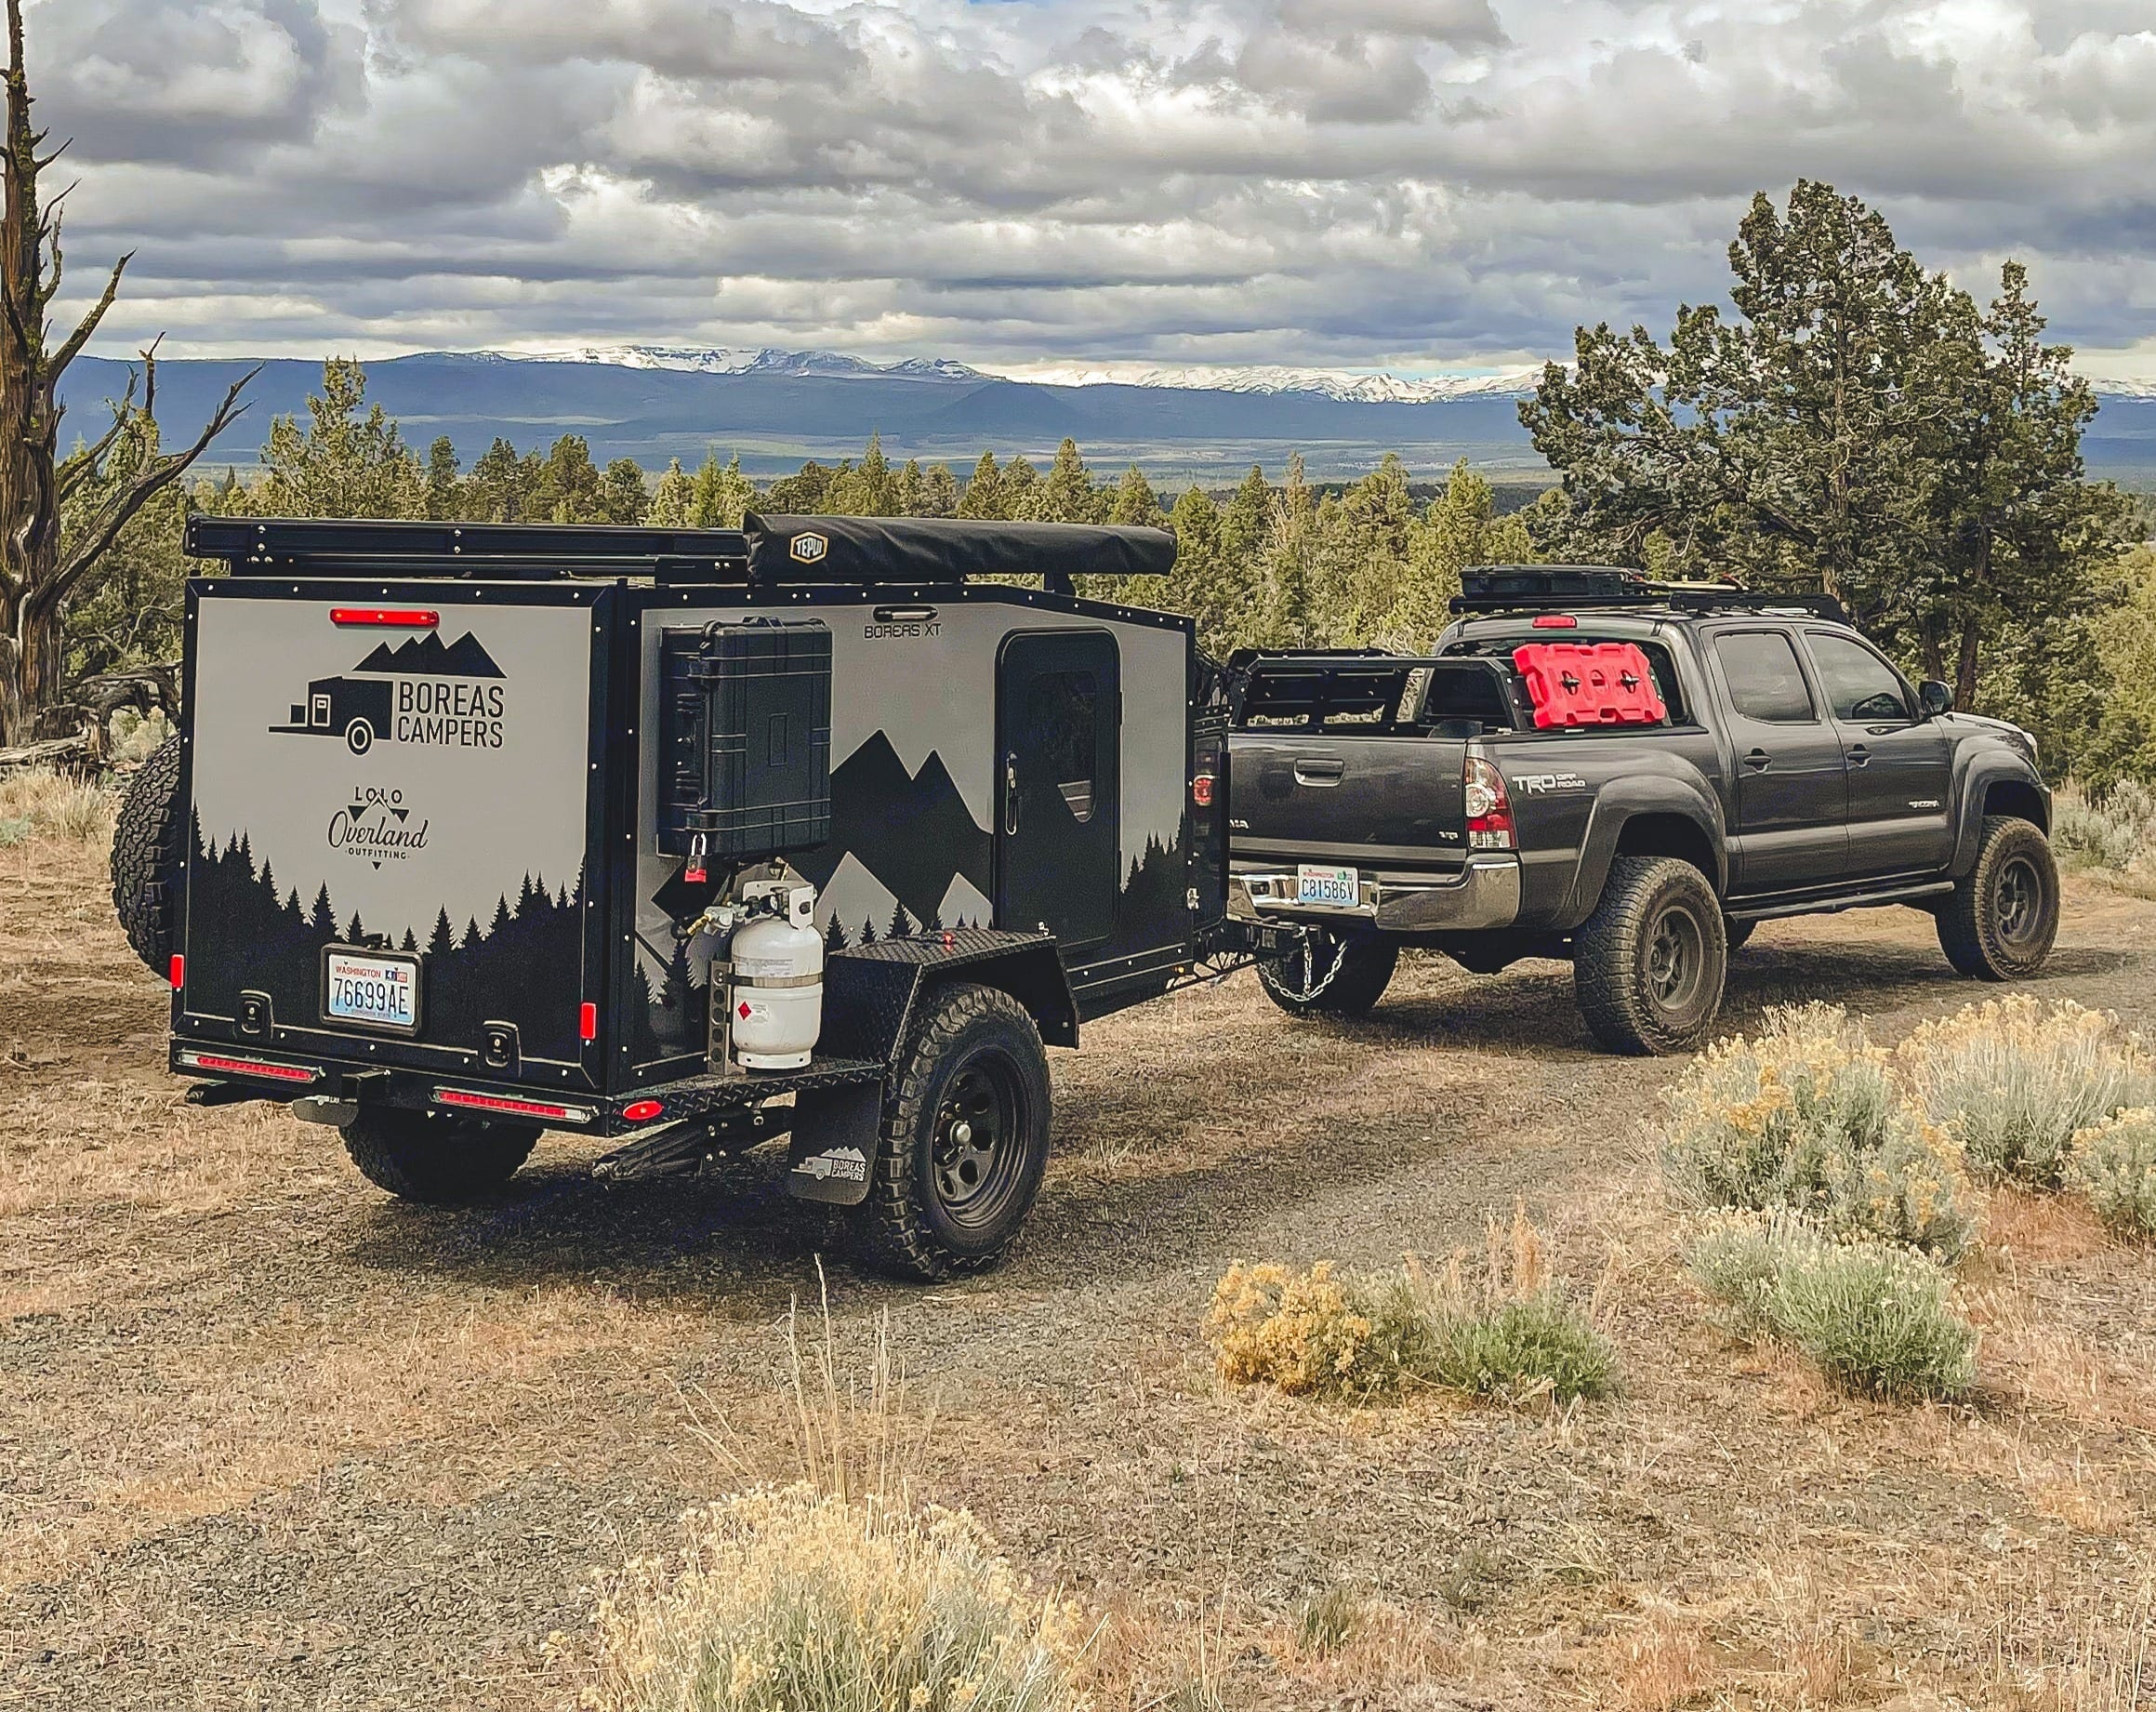 On the trail out in central Oregon with the 2021 Boreas XT trailer. Remote camping at its finest! Skip the reservations and crowds!. Boreas XT 2021